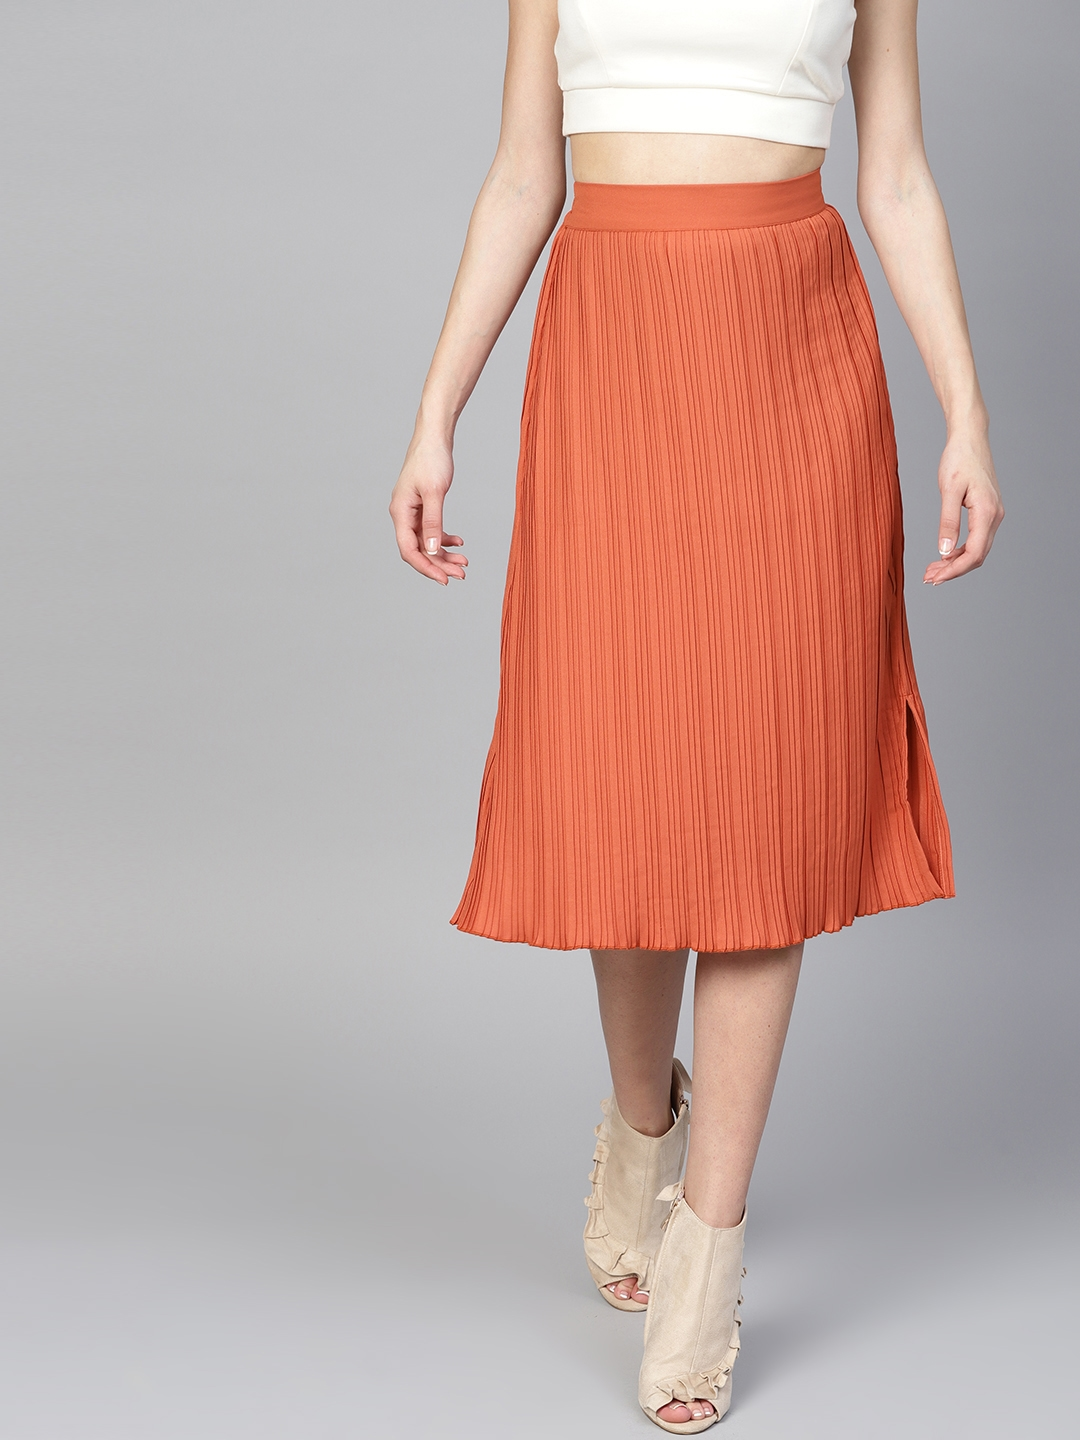 c8ba216cb Buy Athena Women Rust Orange Solid Pleated A Line Skirt - Skirts for ...